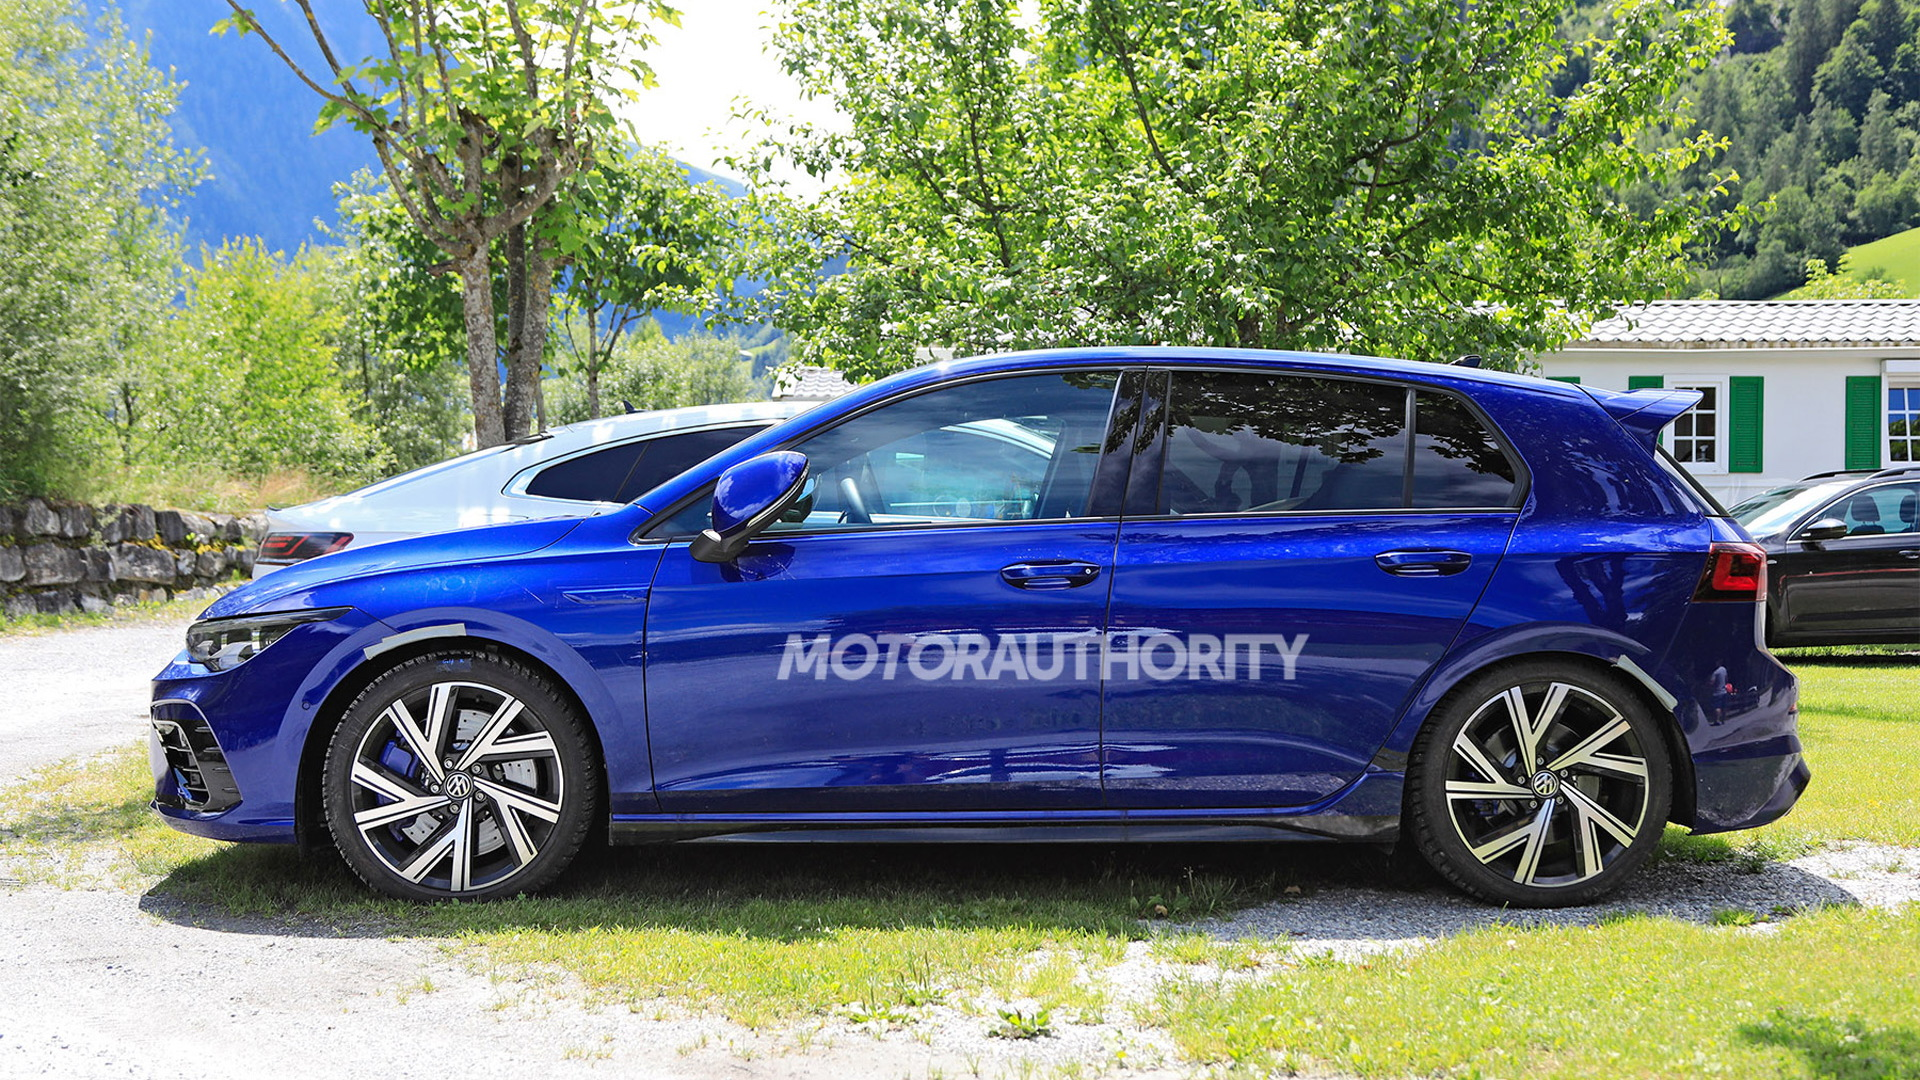 2022 Volkswagen Golf R spy shots - Photo credit: S. Baldauf/SB-Medien